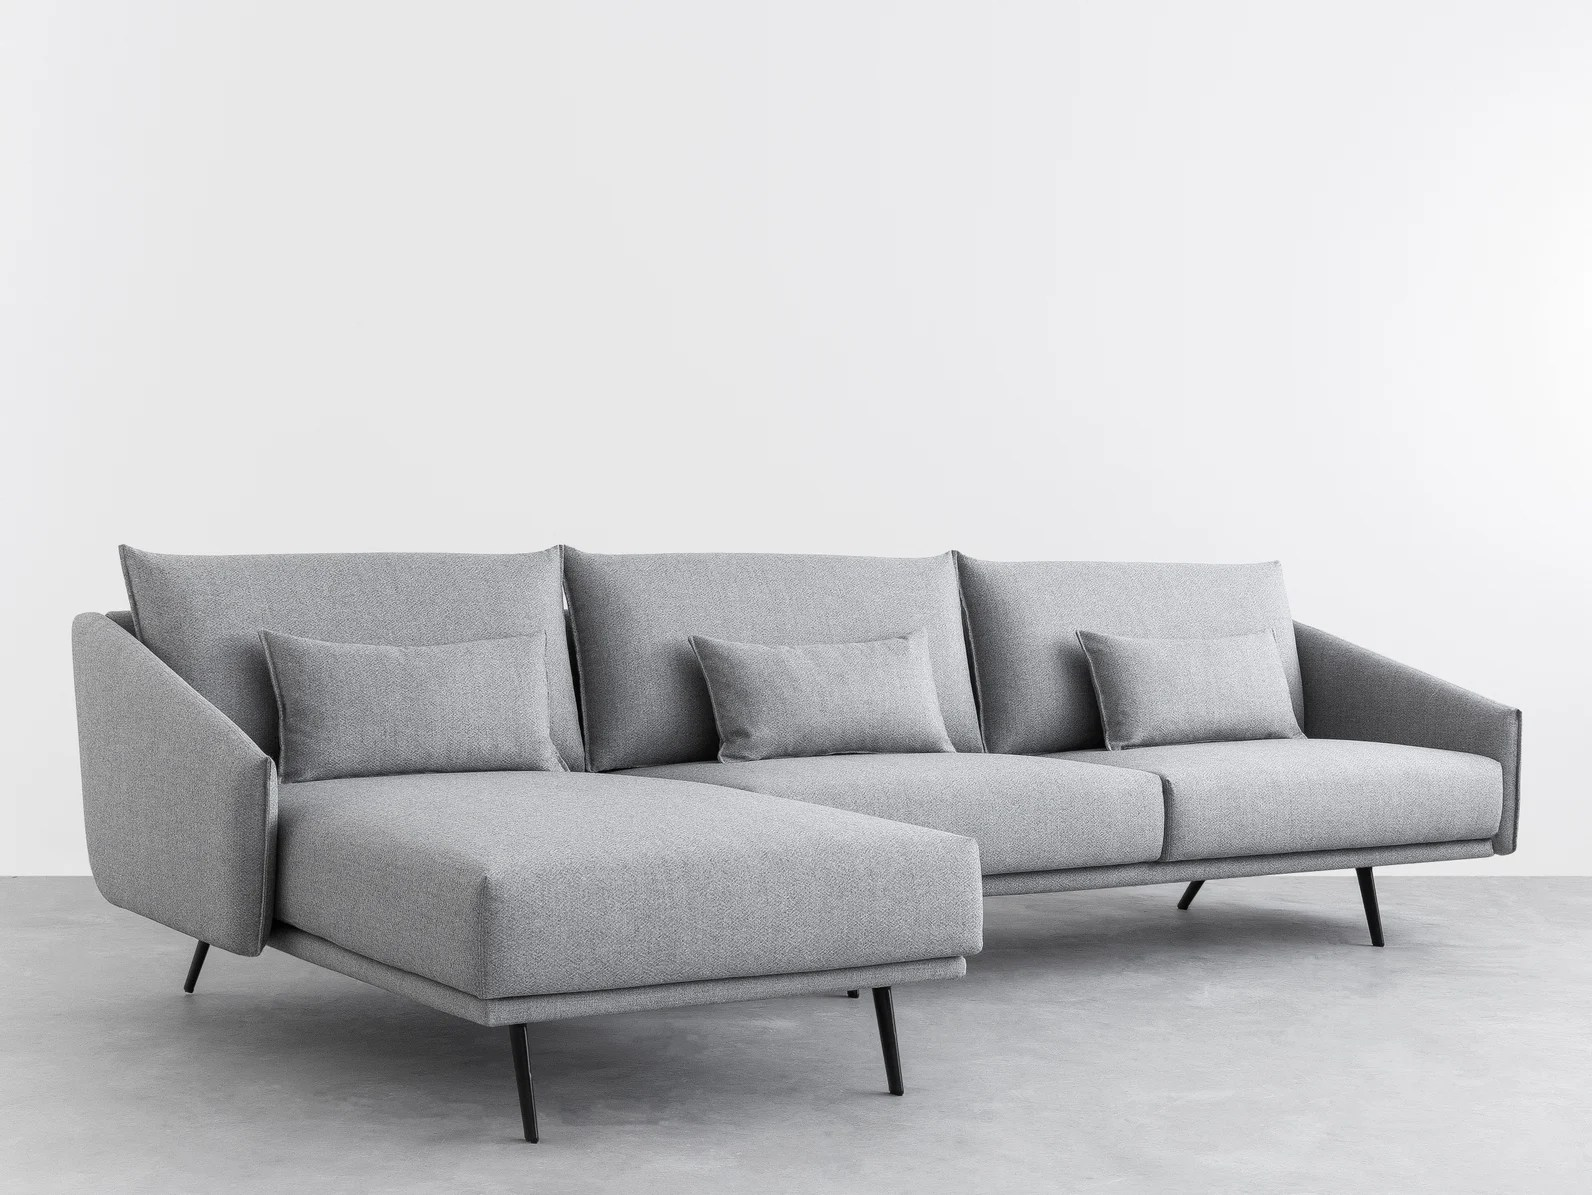 chaise longue fabric sofa sofasofa madrid costura with collection by stua